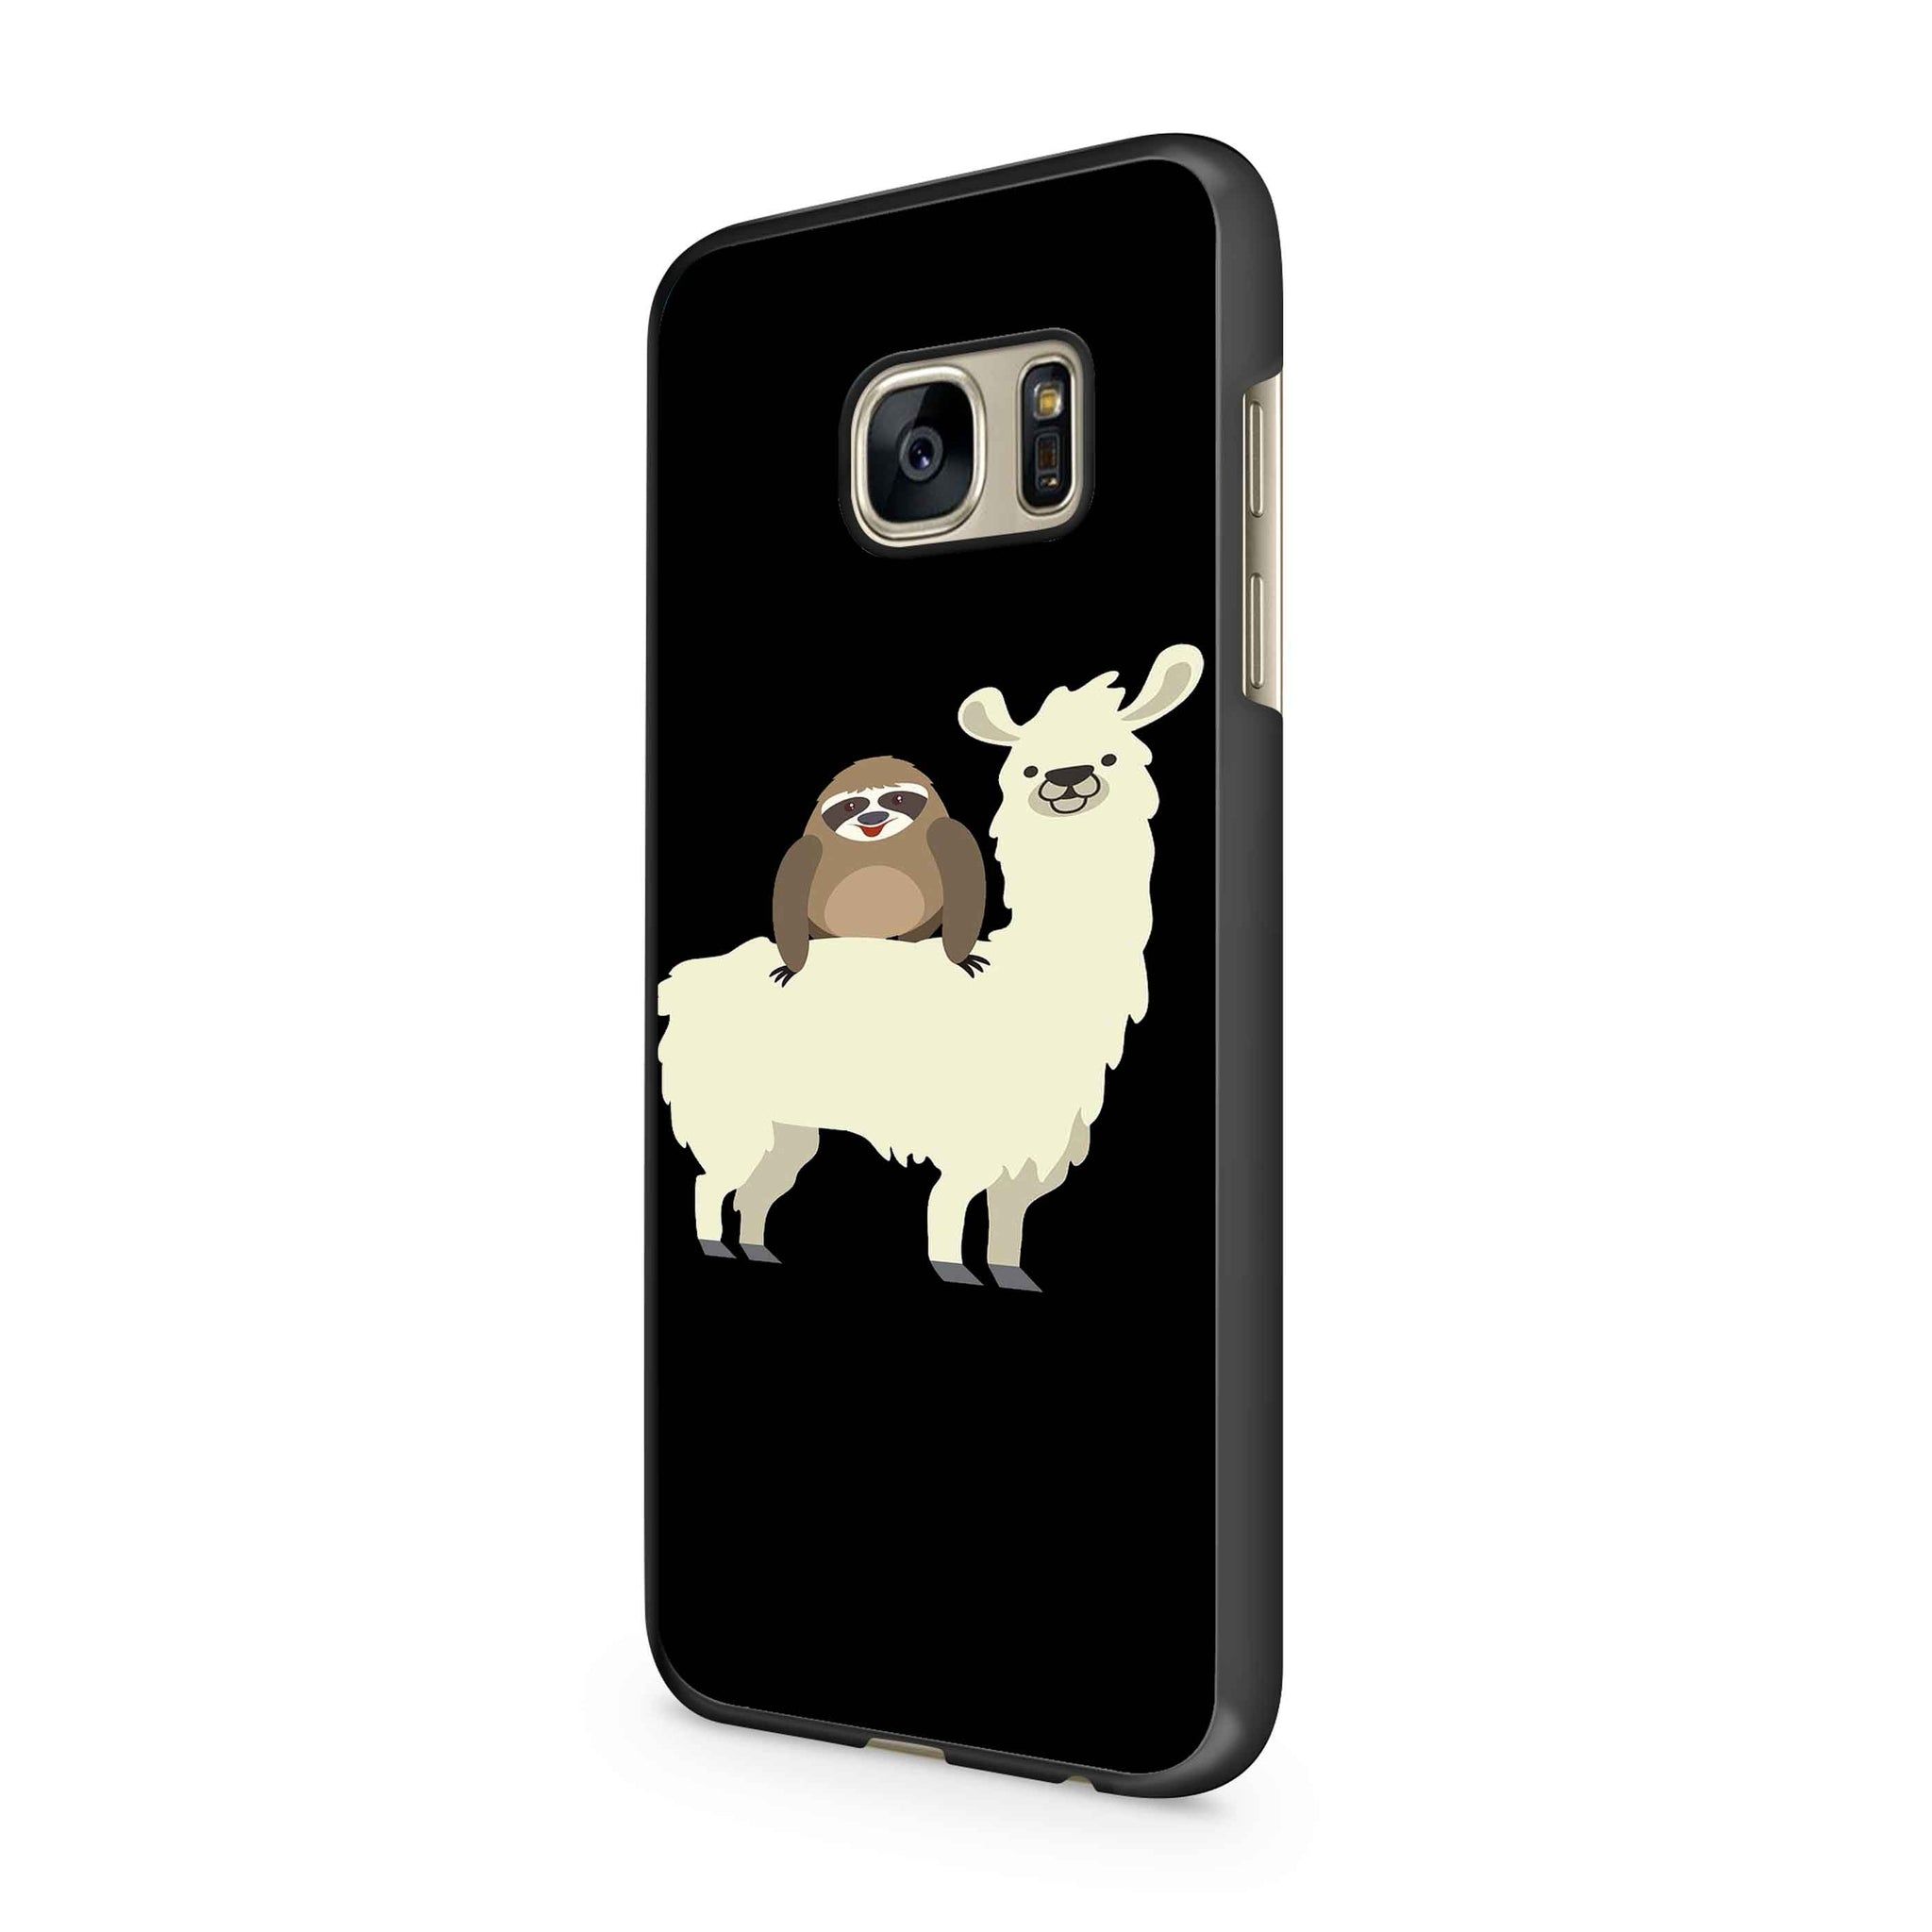 Sloth Riding Llama Samsung Galaxy S7 / S7 Edge Case